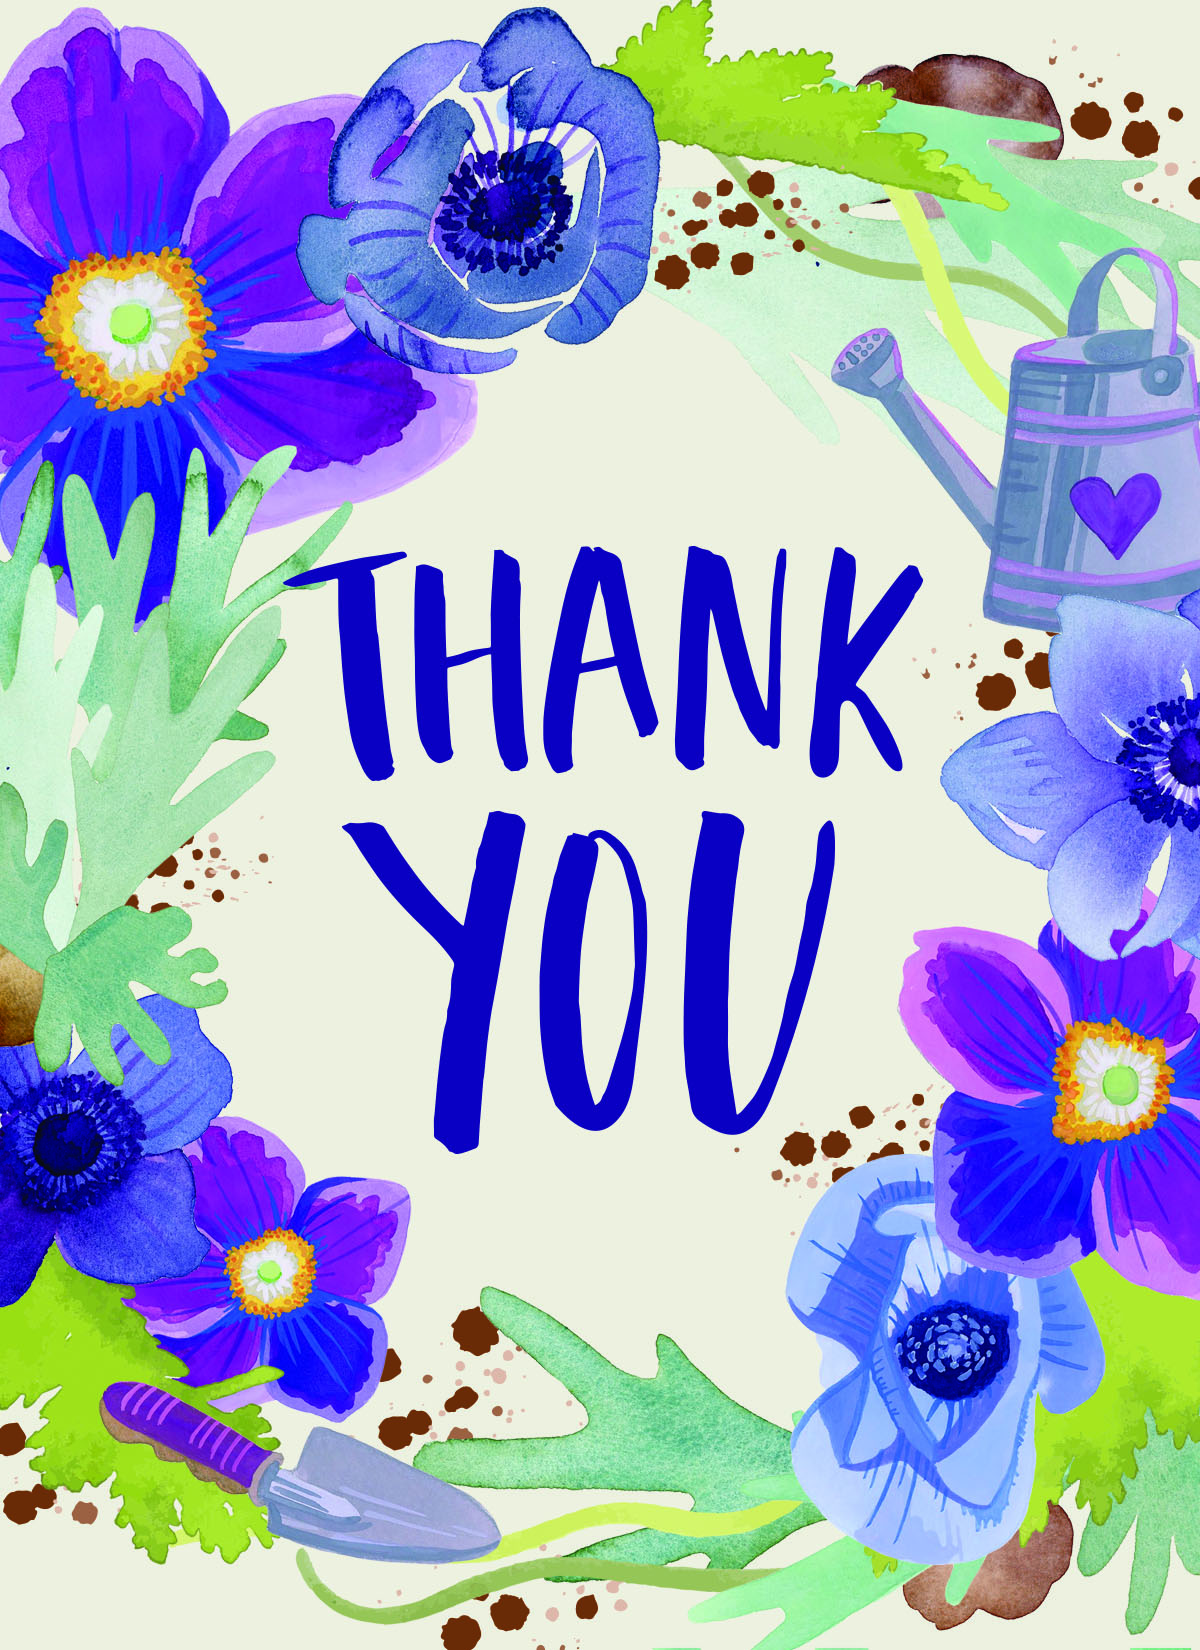 """Blank Thank You cards  5.5"""" x 4"""" folded: standard matte with white envelope   $2.00 each -or- 3 for $5.00  jackiejeanart@gmail.com for orders"""